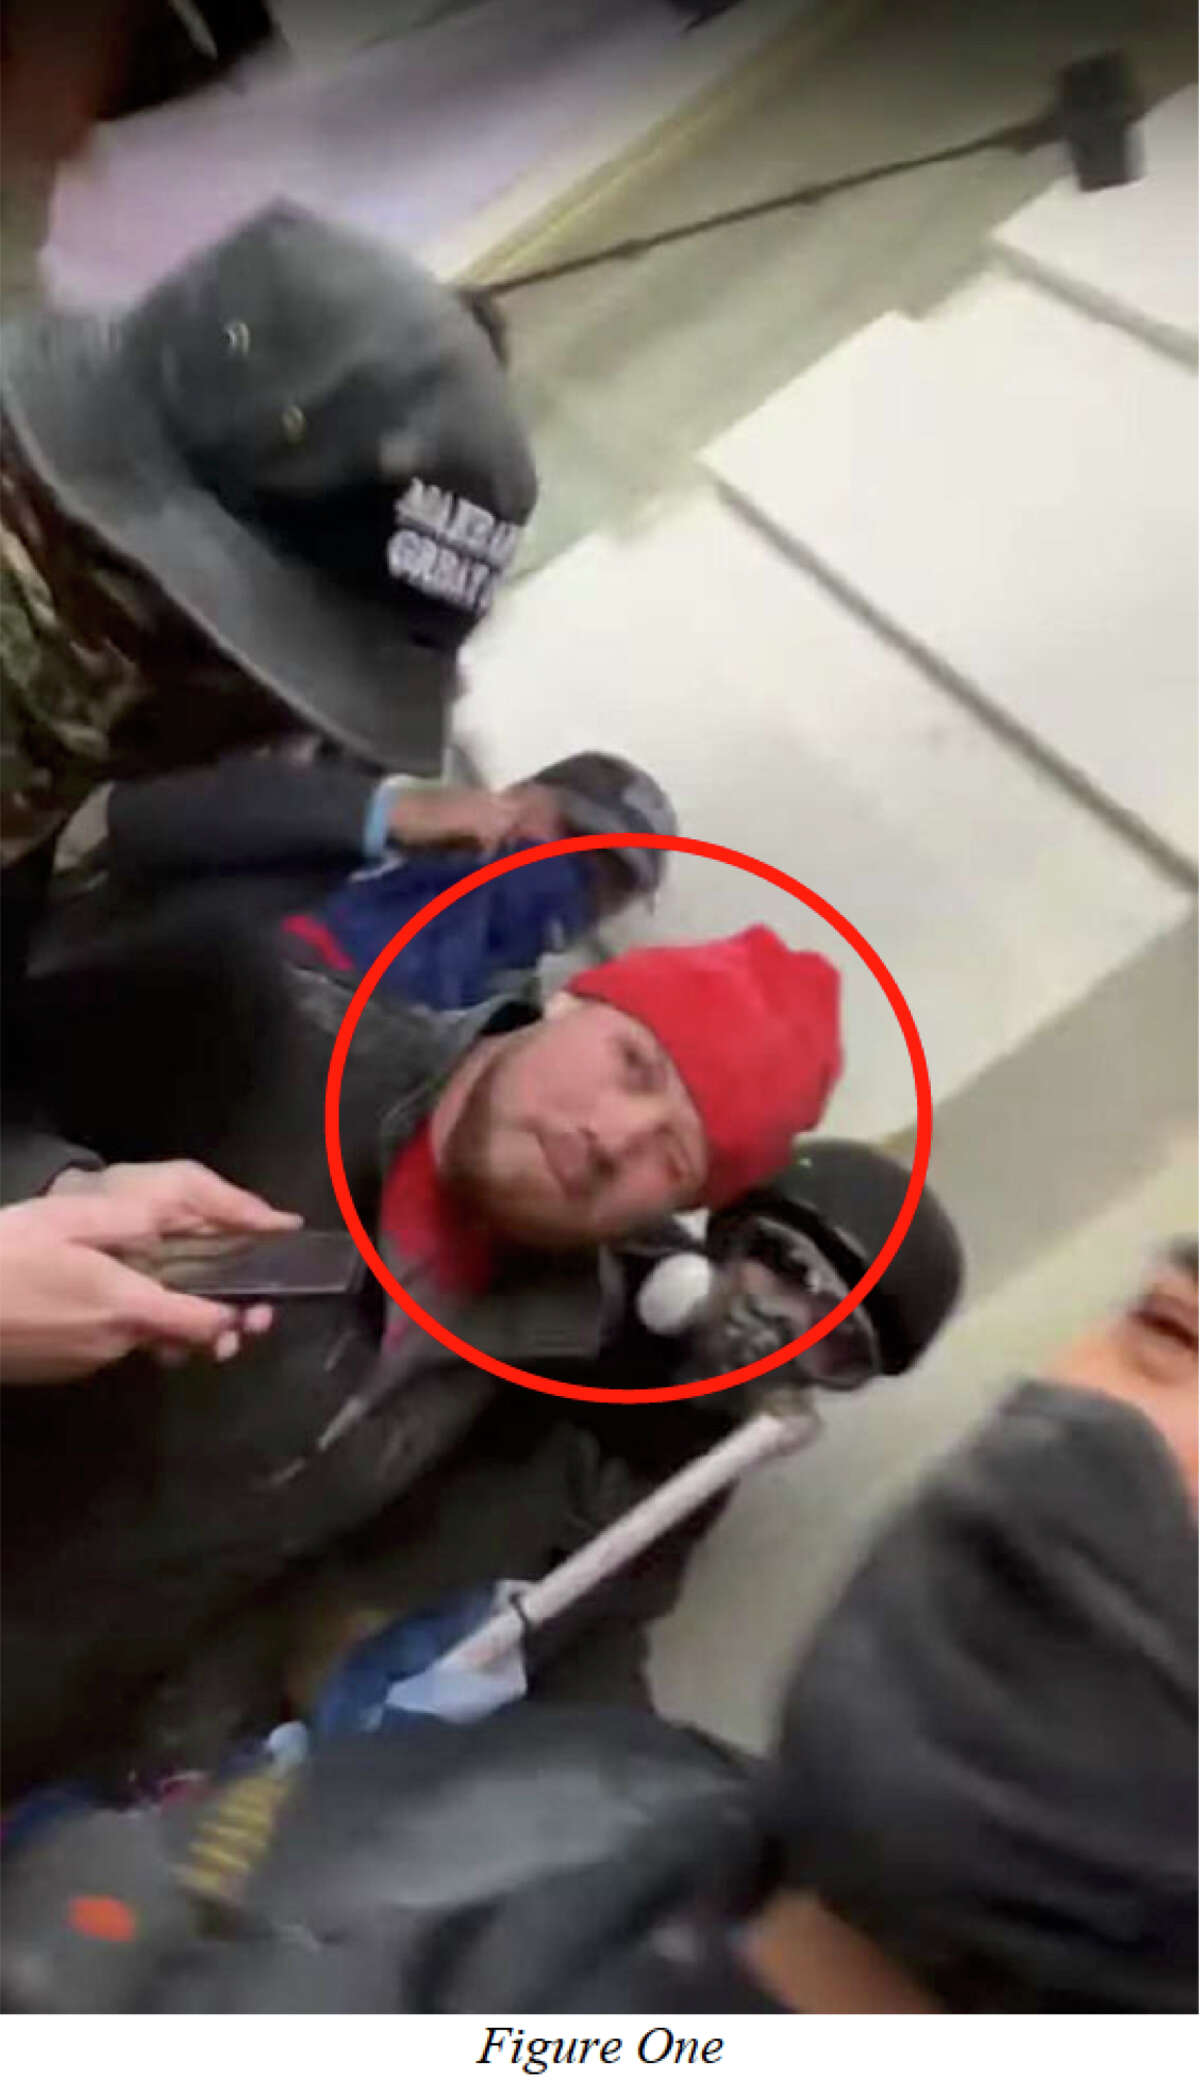 Christian Cortez of Seabrook, Texas, can be seen in video footage shouting at police after apparently being sprayed with pepper spray, according to charging documents.